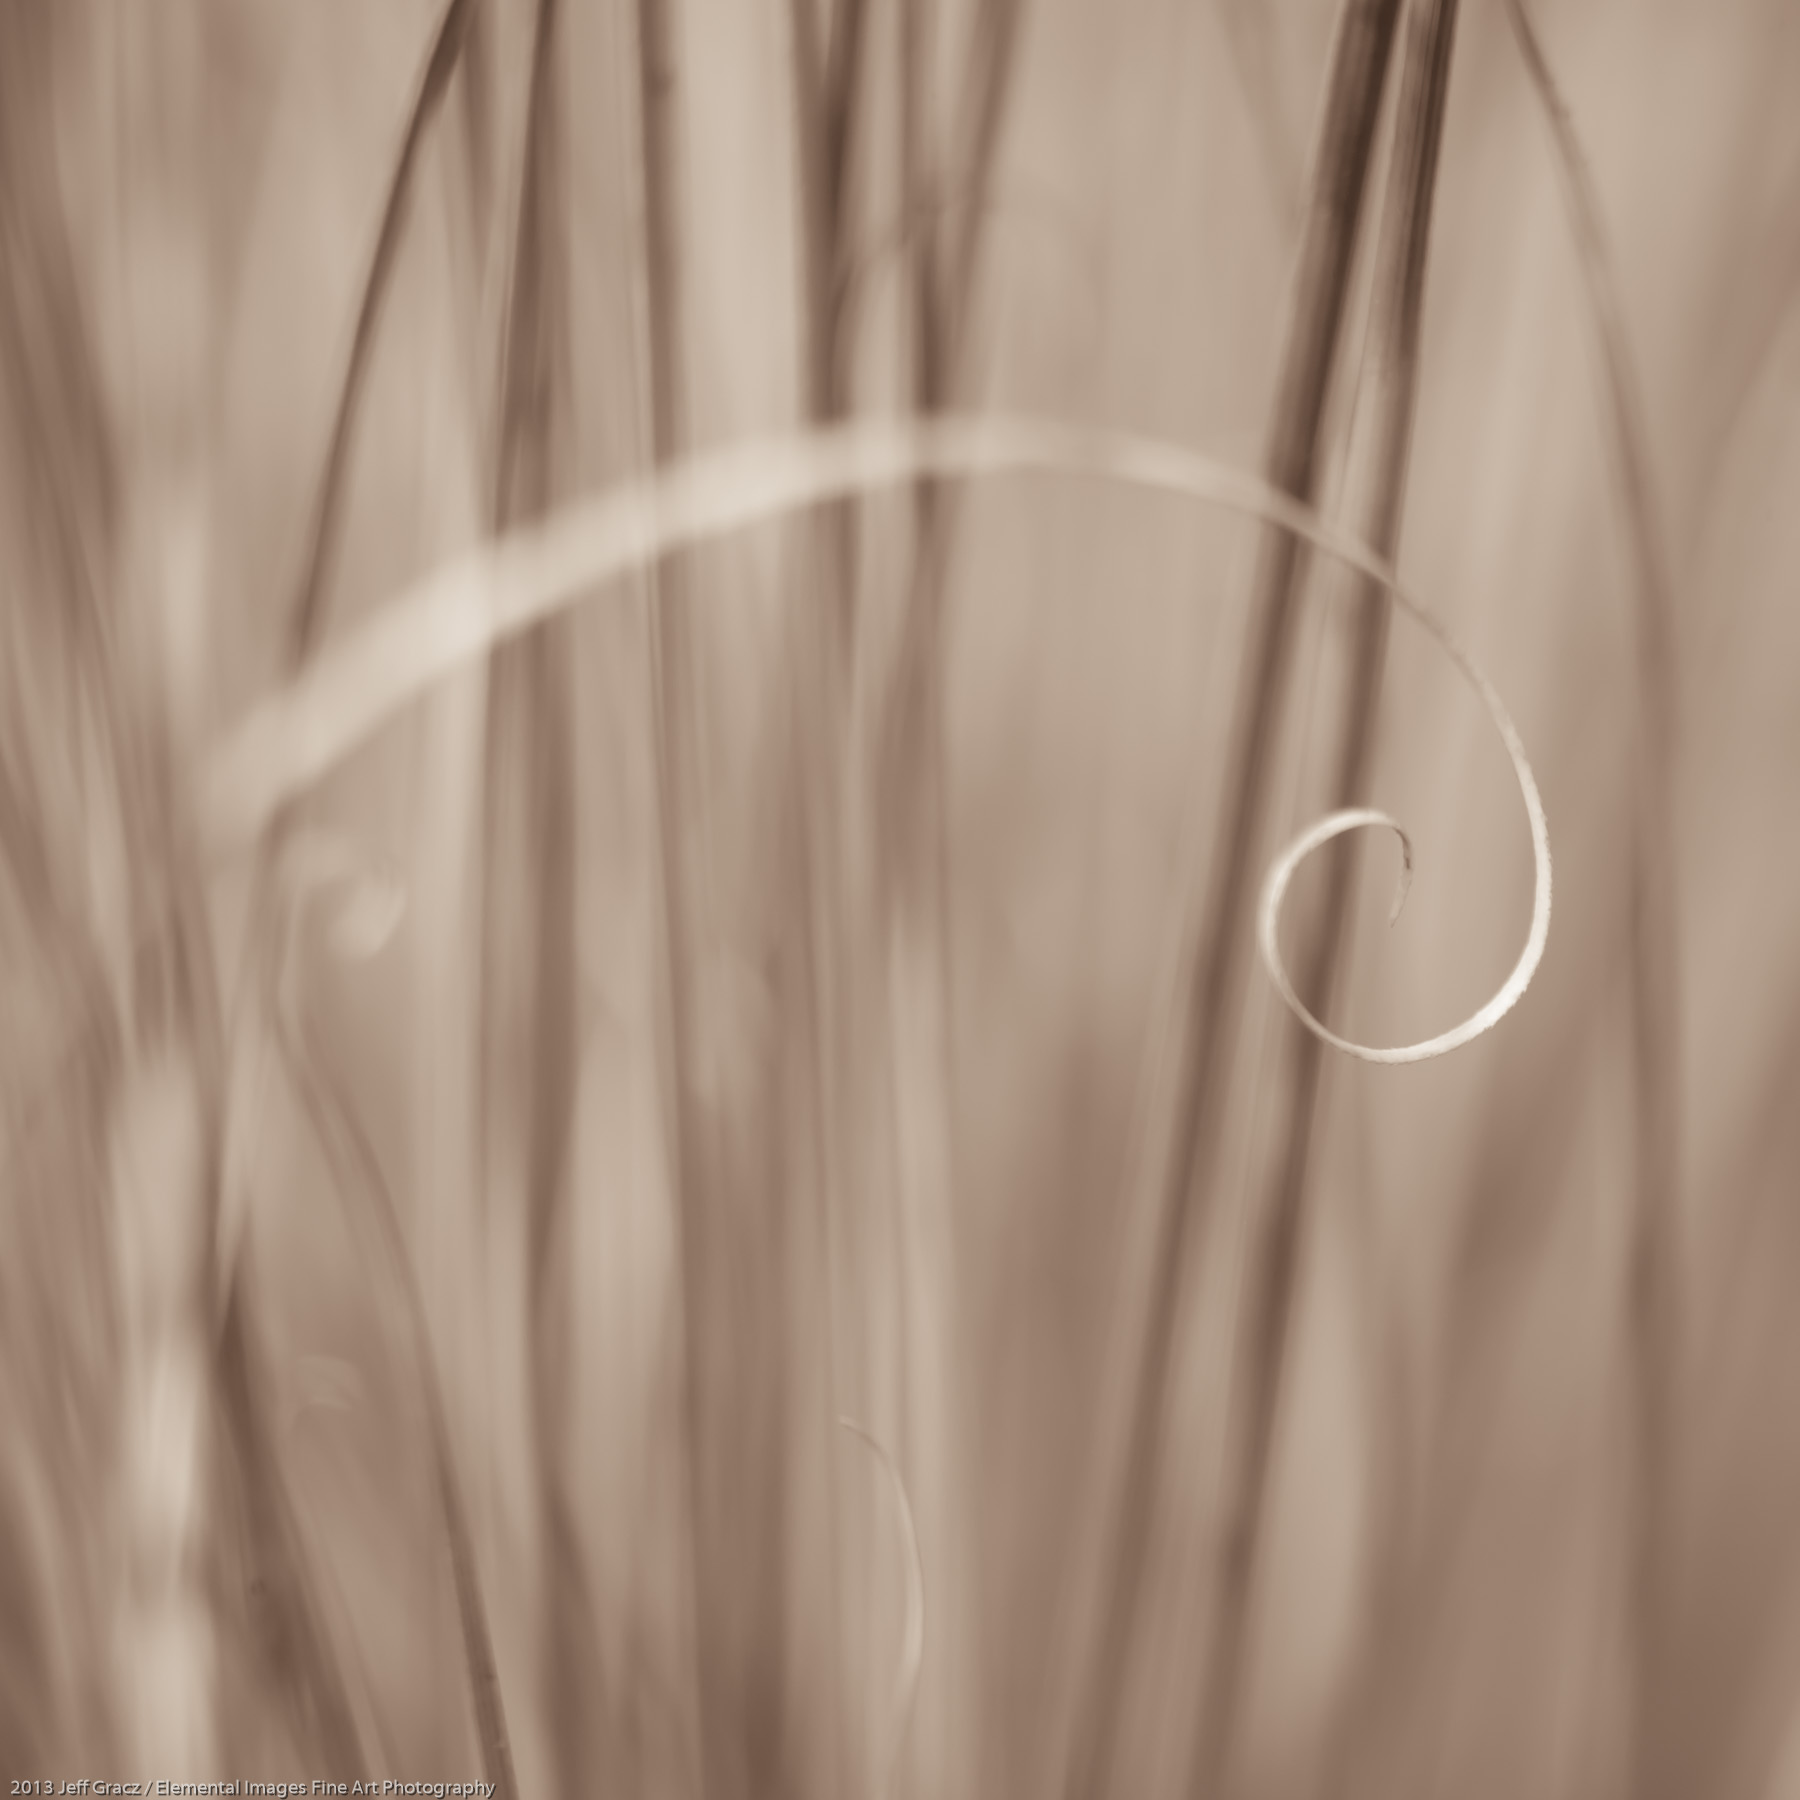 Grasses LXI | Portland | OR | USA - © 2013 Jeff Gracz / Elemental Images Fine Art Photography - All Rights Reserved Worldwide